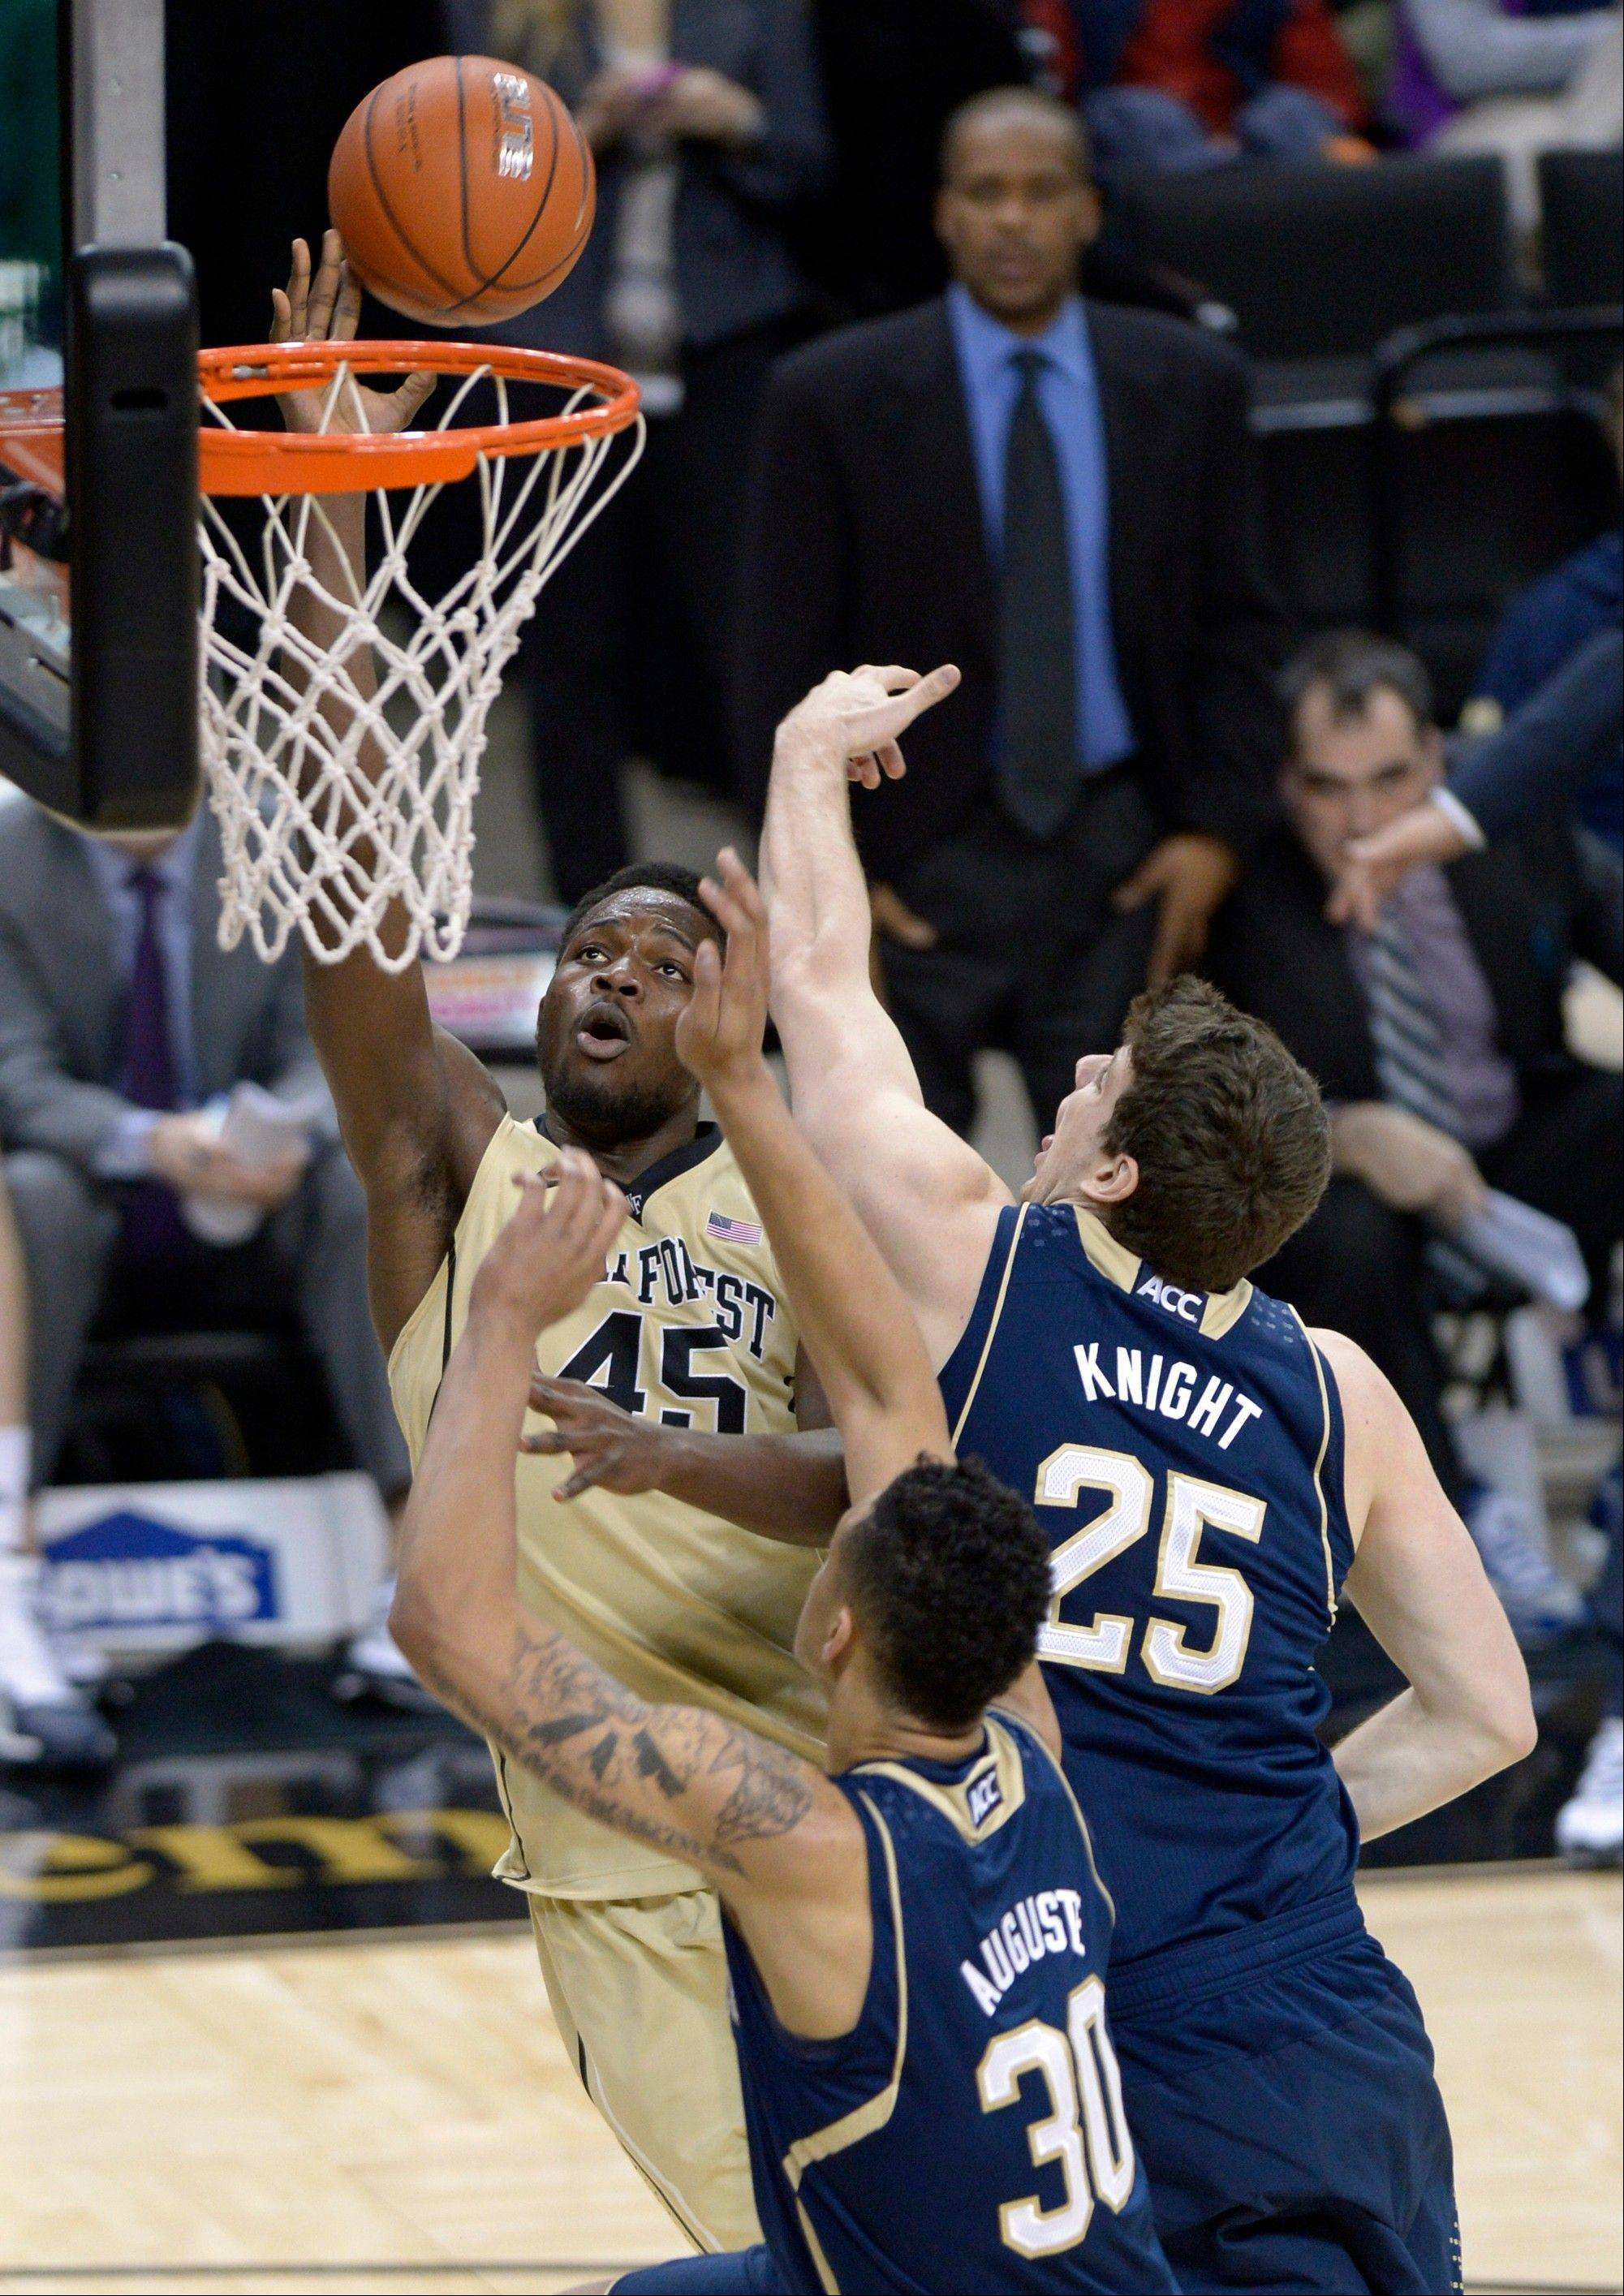 Wake Forest forward Arnaud William Adala Moto (45) gets by the Notre Dame forwards Tom Knight (25) and Zach Auguste (30) during the first half of an NCAA college basketball game at the Joel Coliseum in Winston-Salem, N.C., Saturday, Jan. 25, 2014.